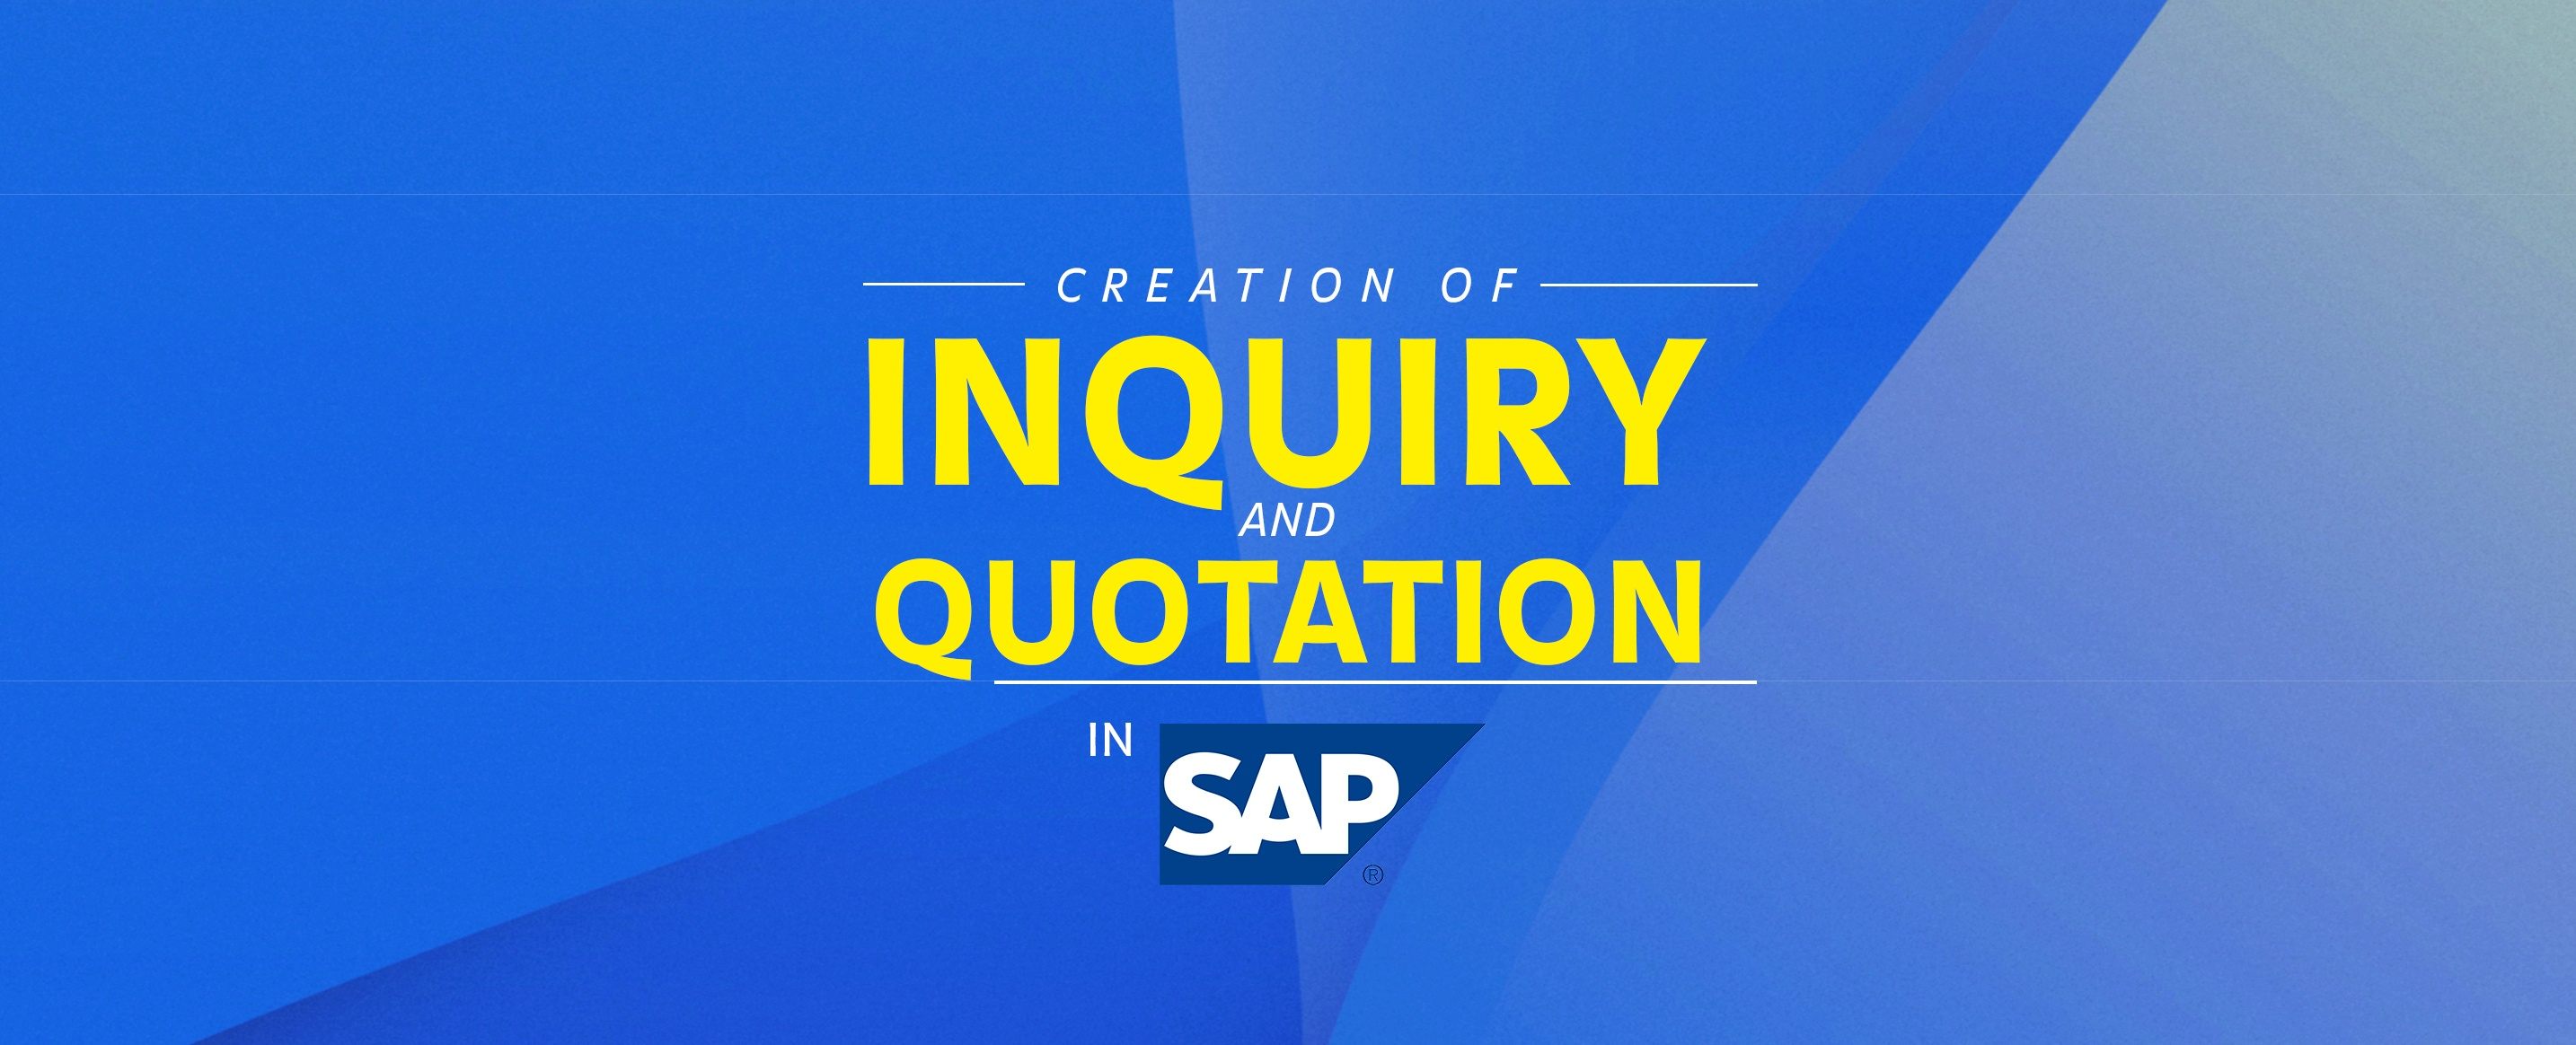 steps-to-create-inquiry-and-quotation-in-sap-ecc